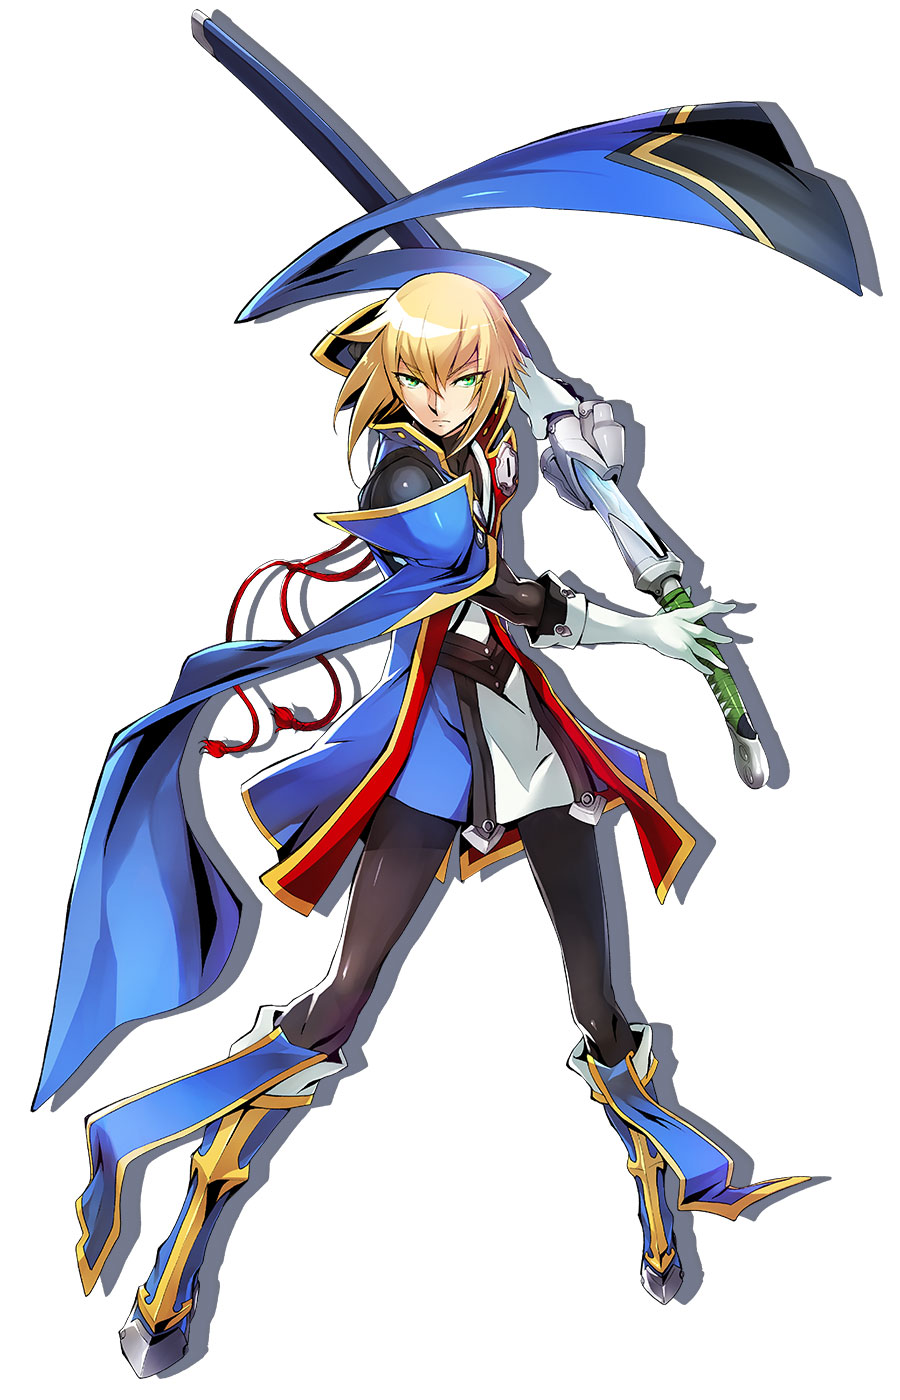 BlazBlue - BlazBlue: Chronophantasma BlazBlue, Персонаж